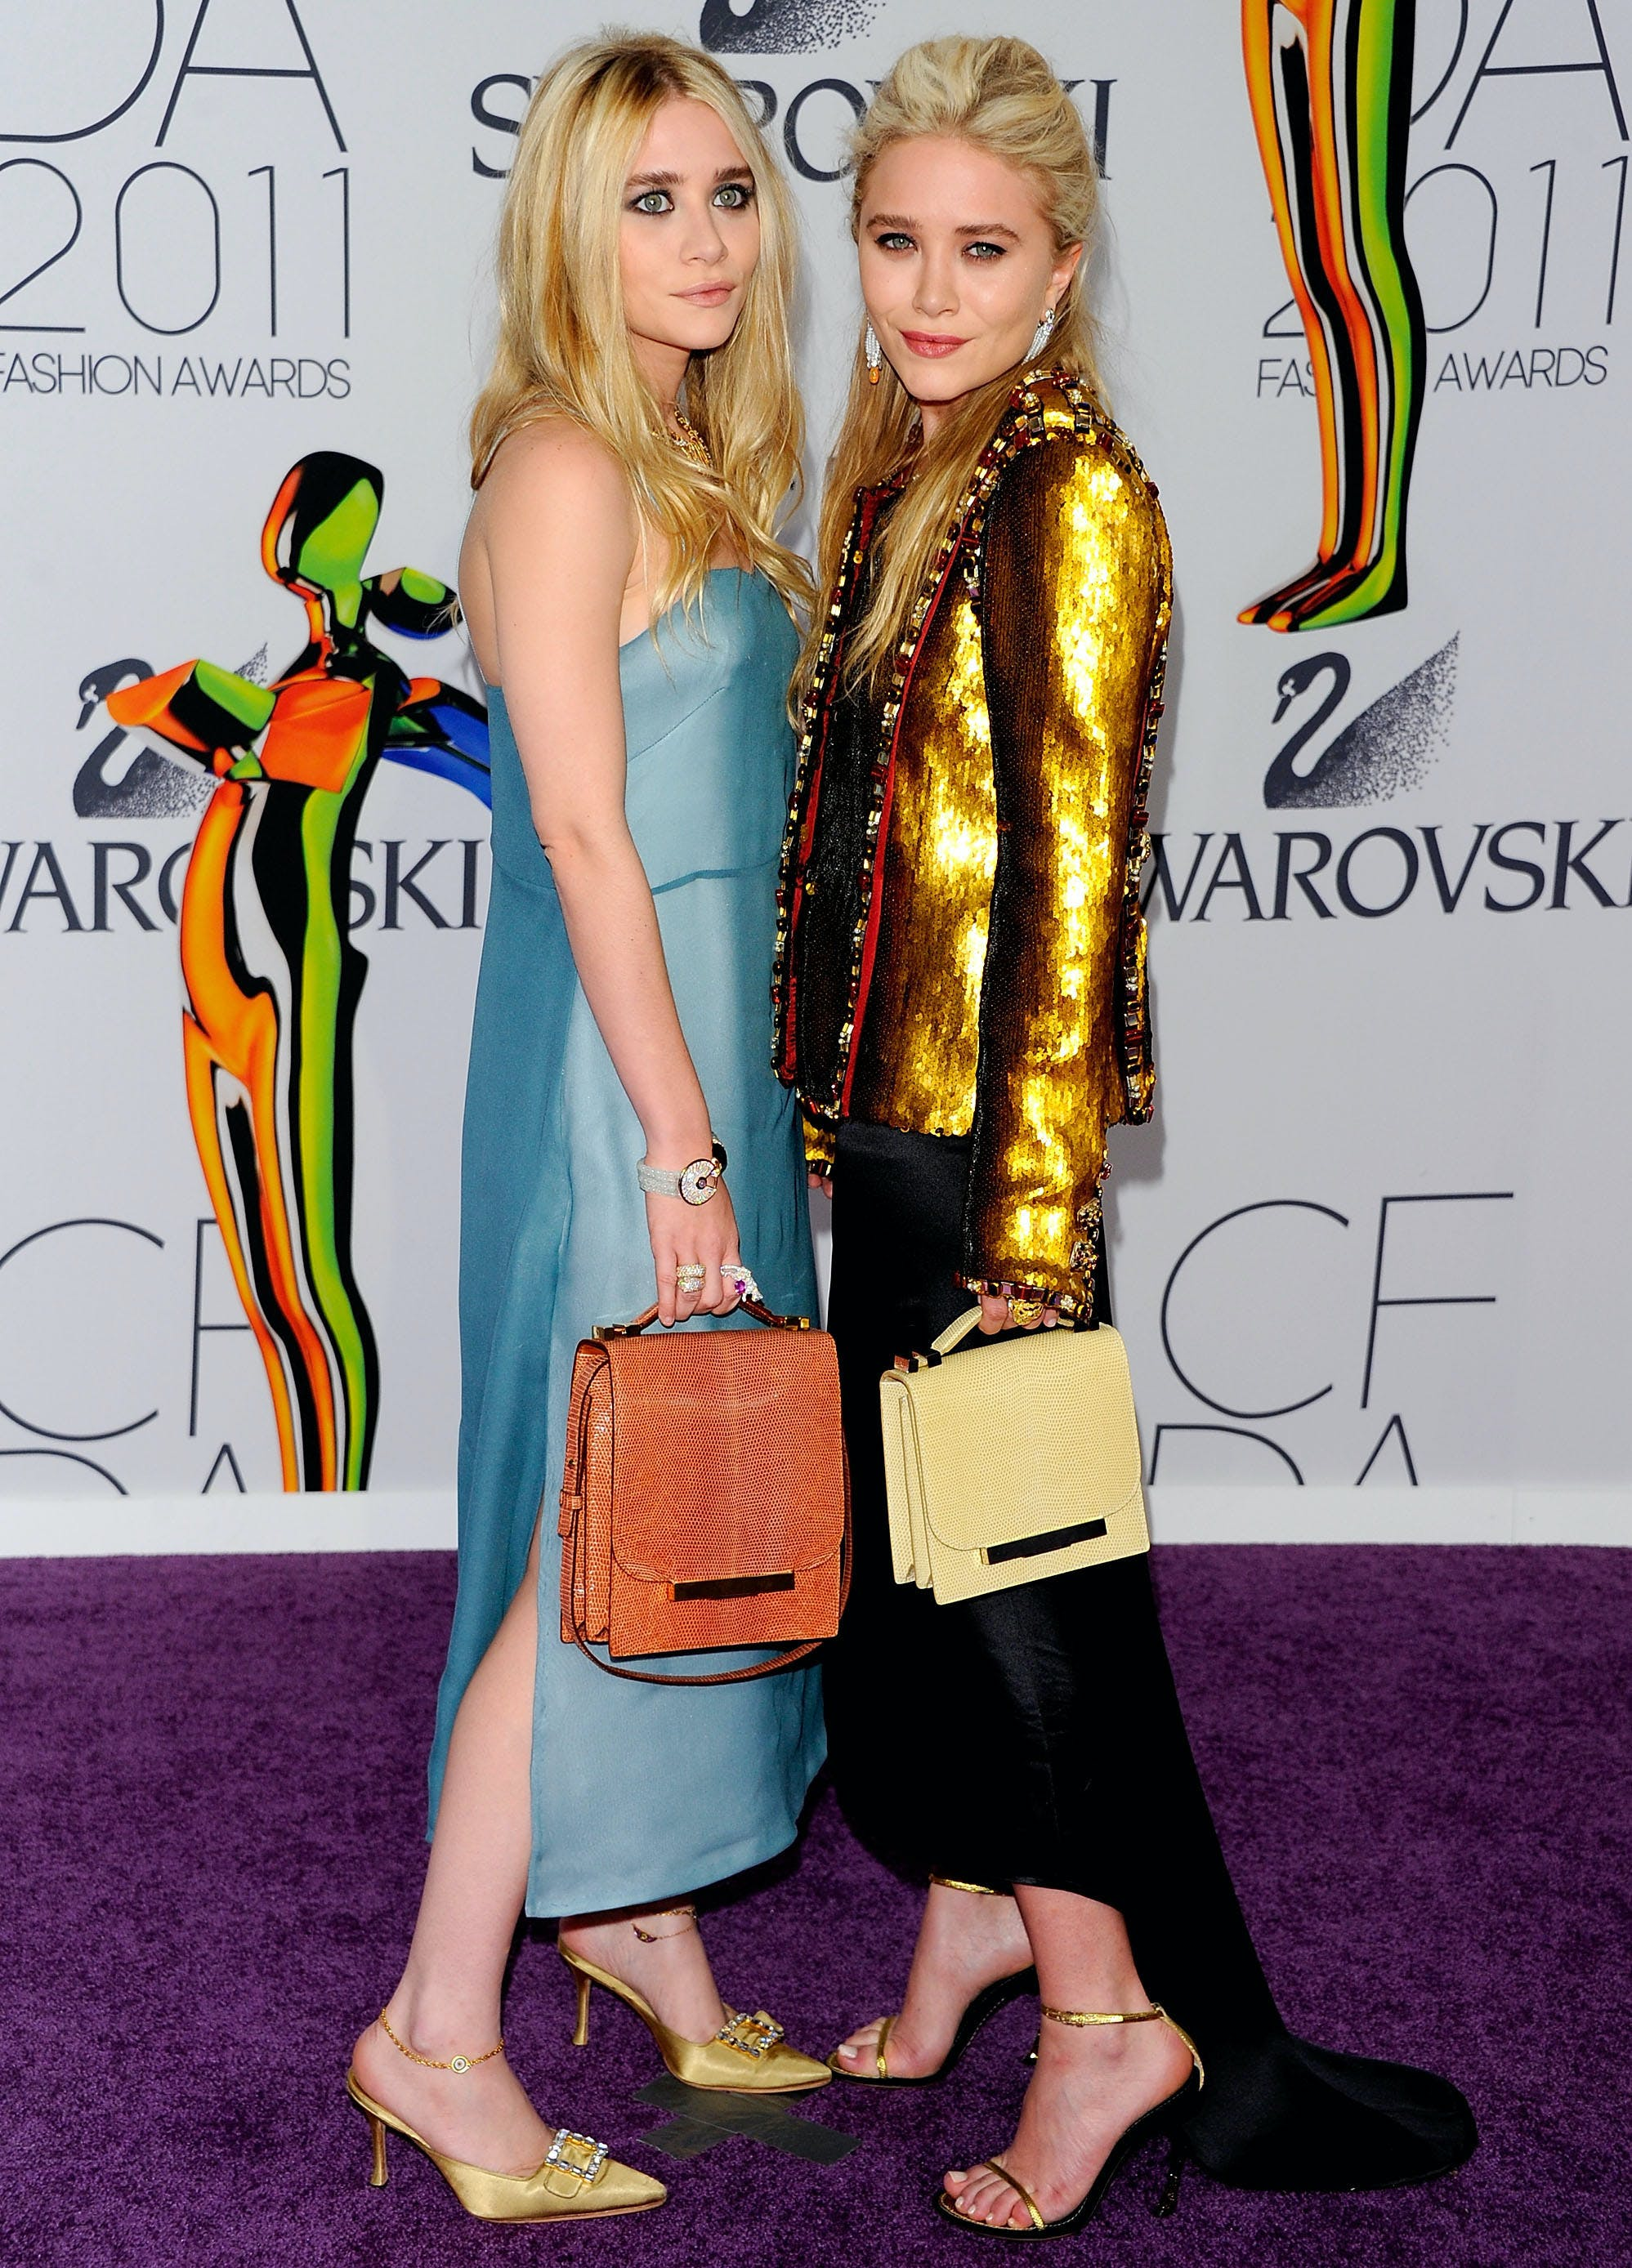 mary kate and ashley olsen in 2011